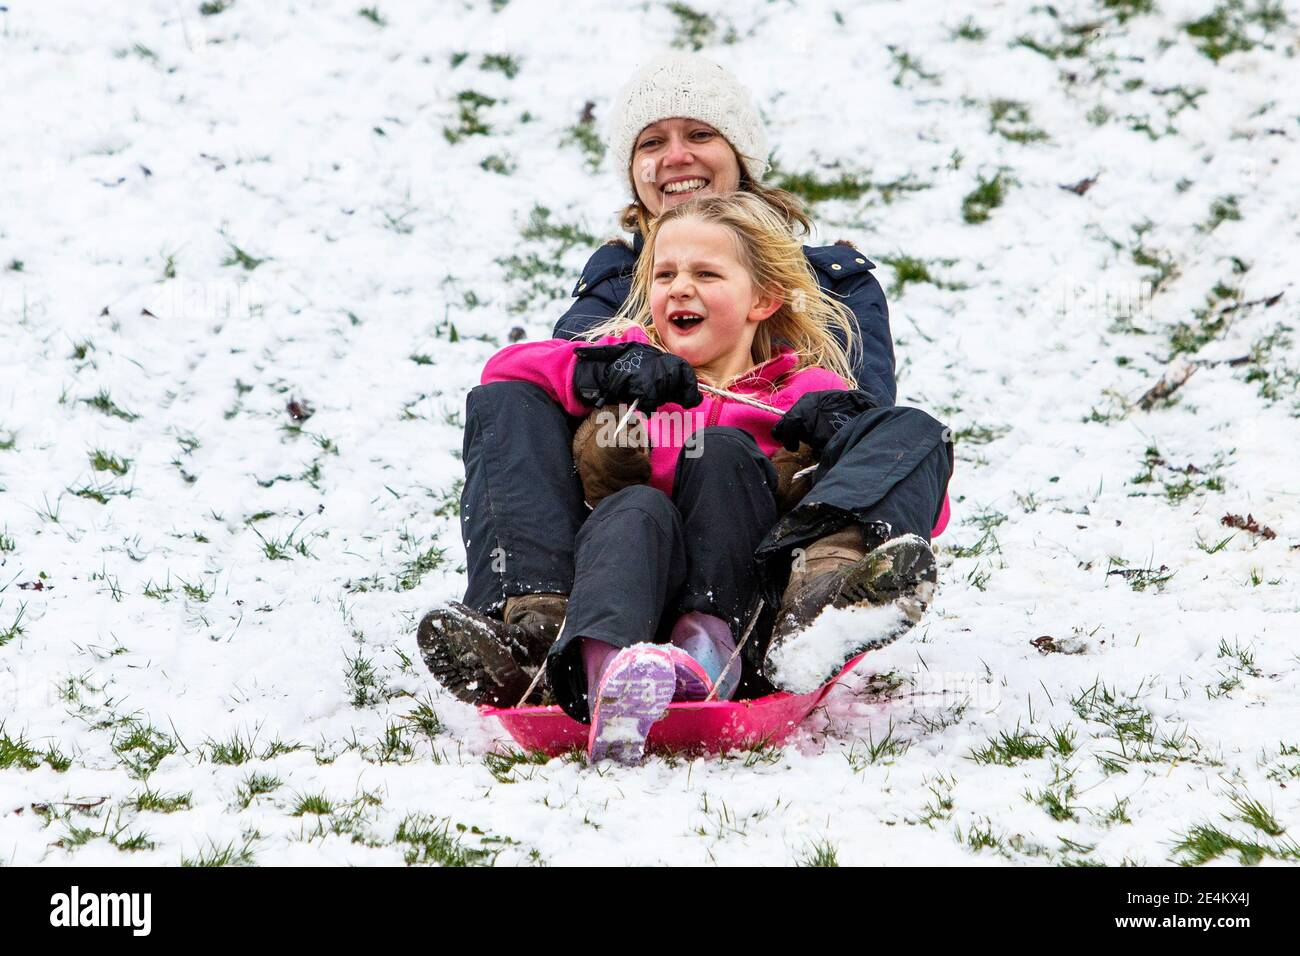 Chippenham, Wiltshire, UK. 24th January, 2021. As Chippenham residents wake up to their first snow of the year, a woman and a child are pictured in a local park in Chippenham as they slide down a hill on a sledge. Credit: Lynchpics/Alamy Live News Stock Photo